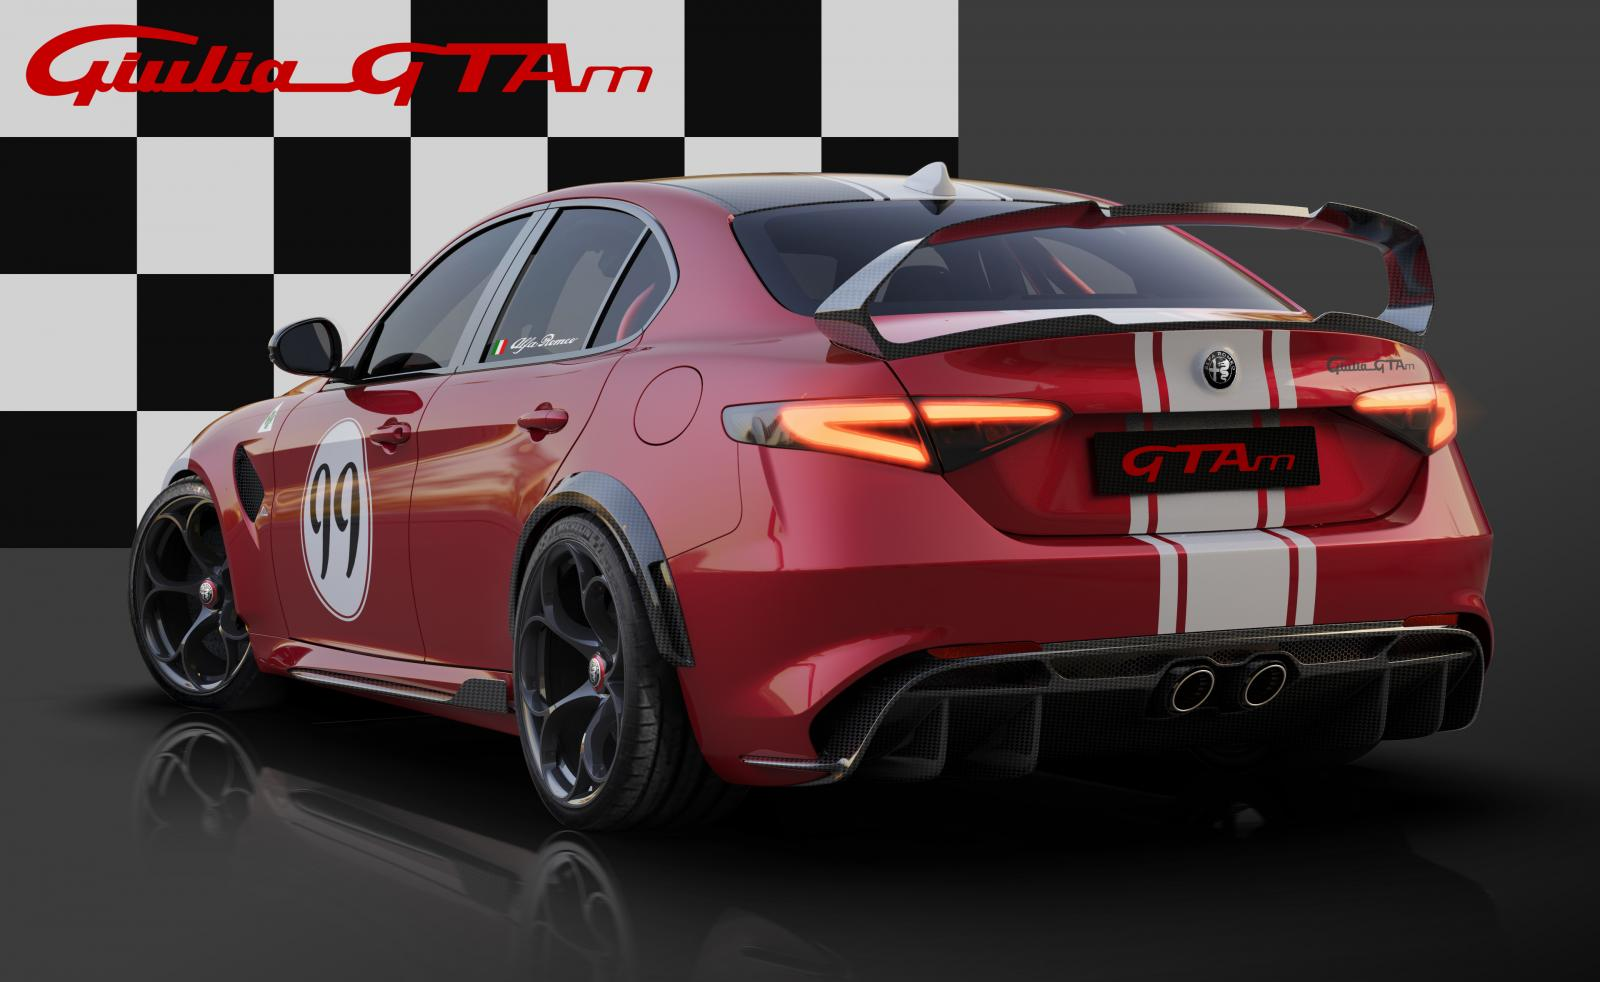 15 Alfa Romeo Giulia GTA dedicated Livery